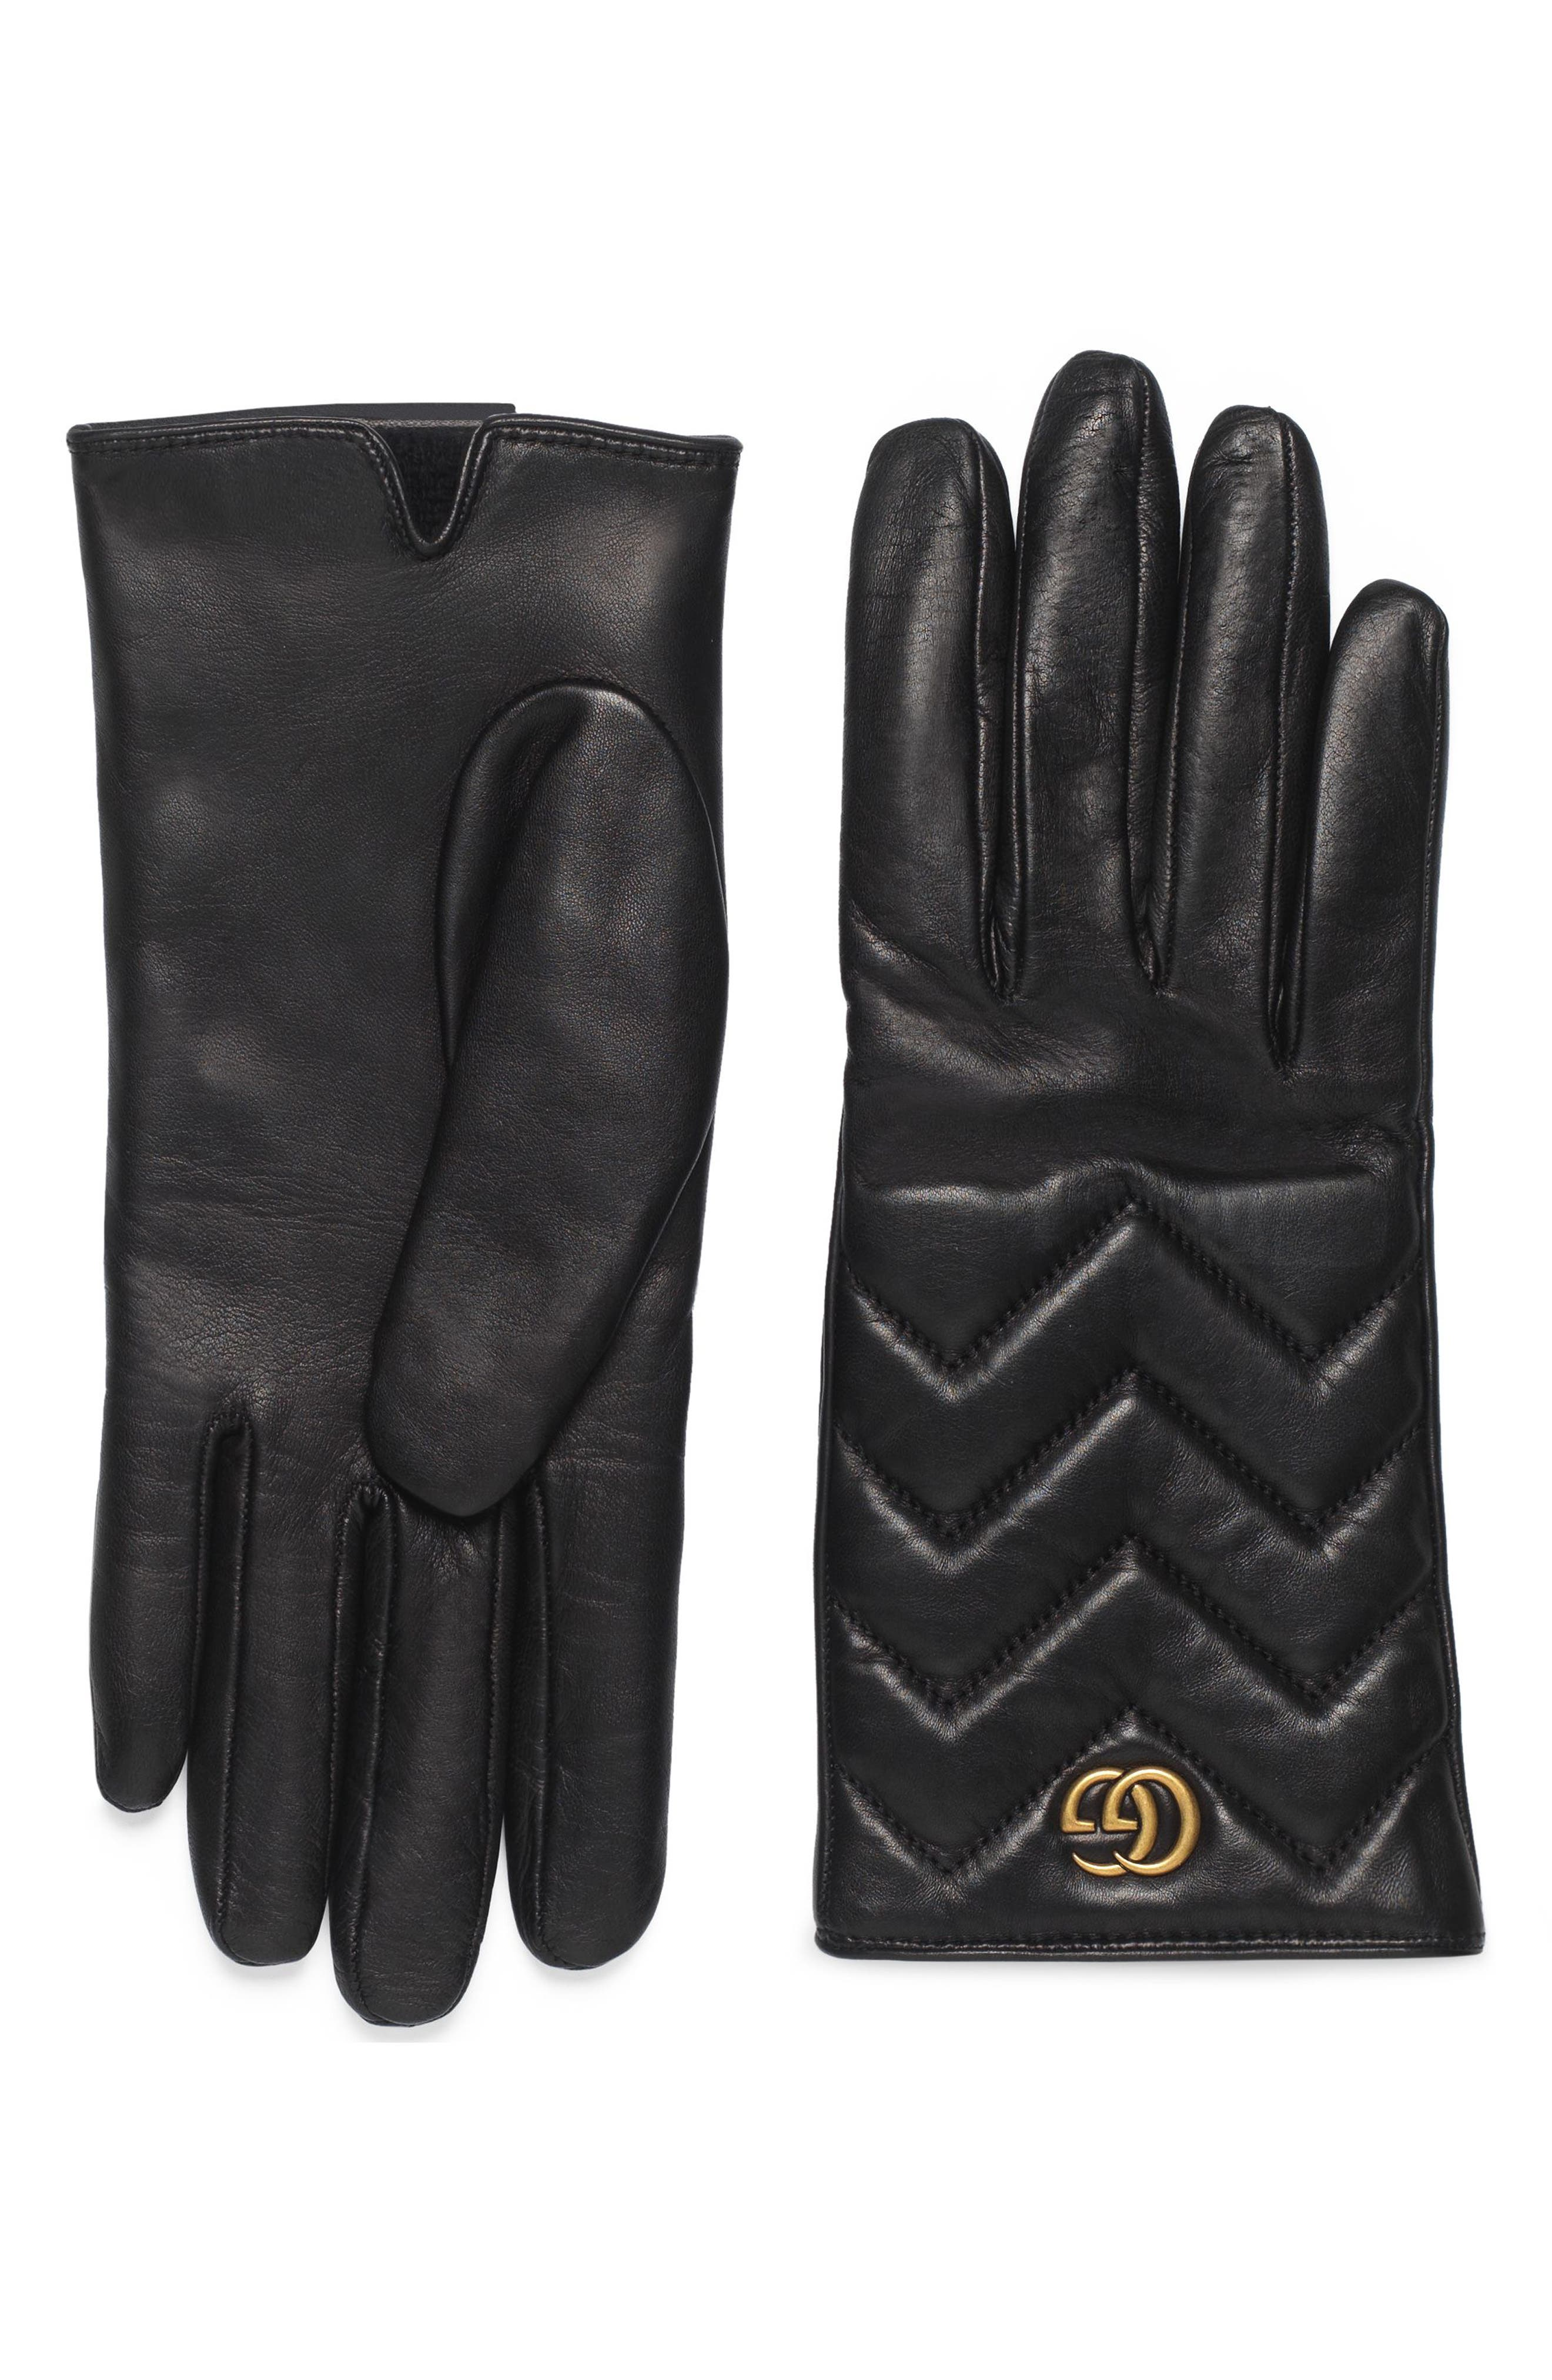 GG Marmont Cashmere Lined Leather Gloves,                         Main,                         color, NERO